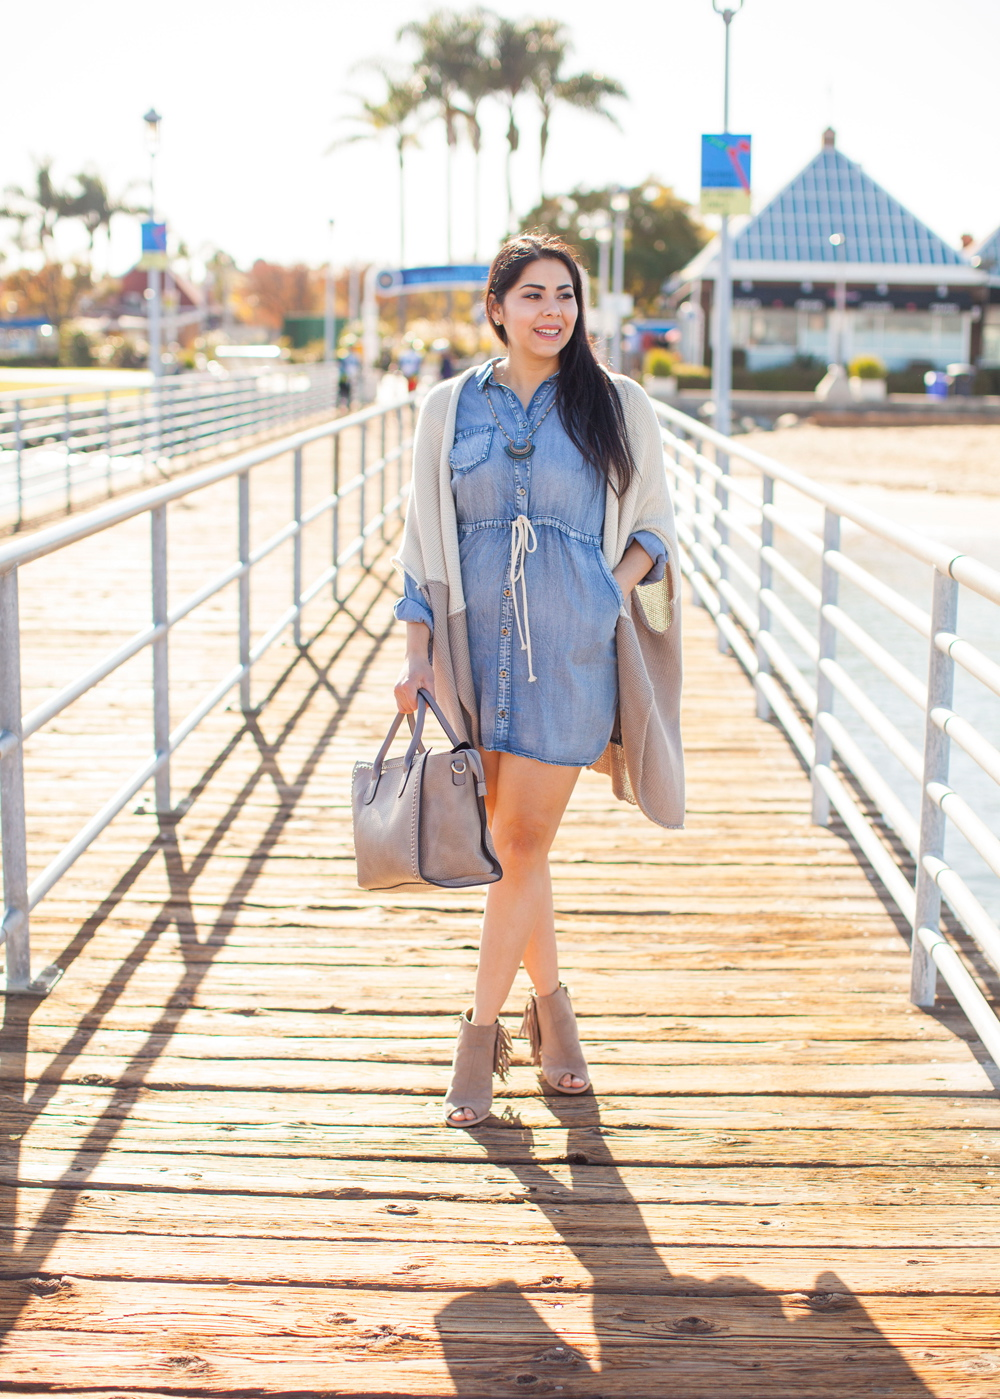 San Diego Fashion Blogger, So cal fashion blogger, so cal style blogger, denim dress ootd